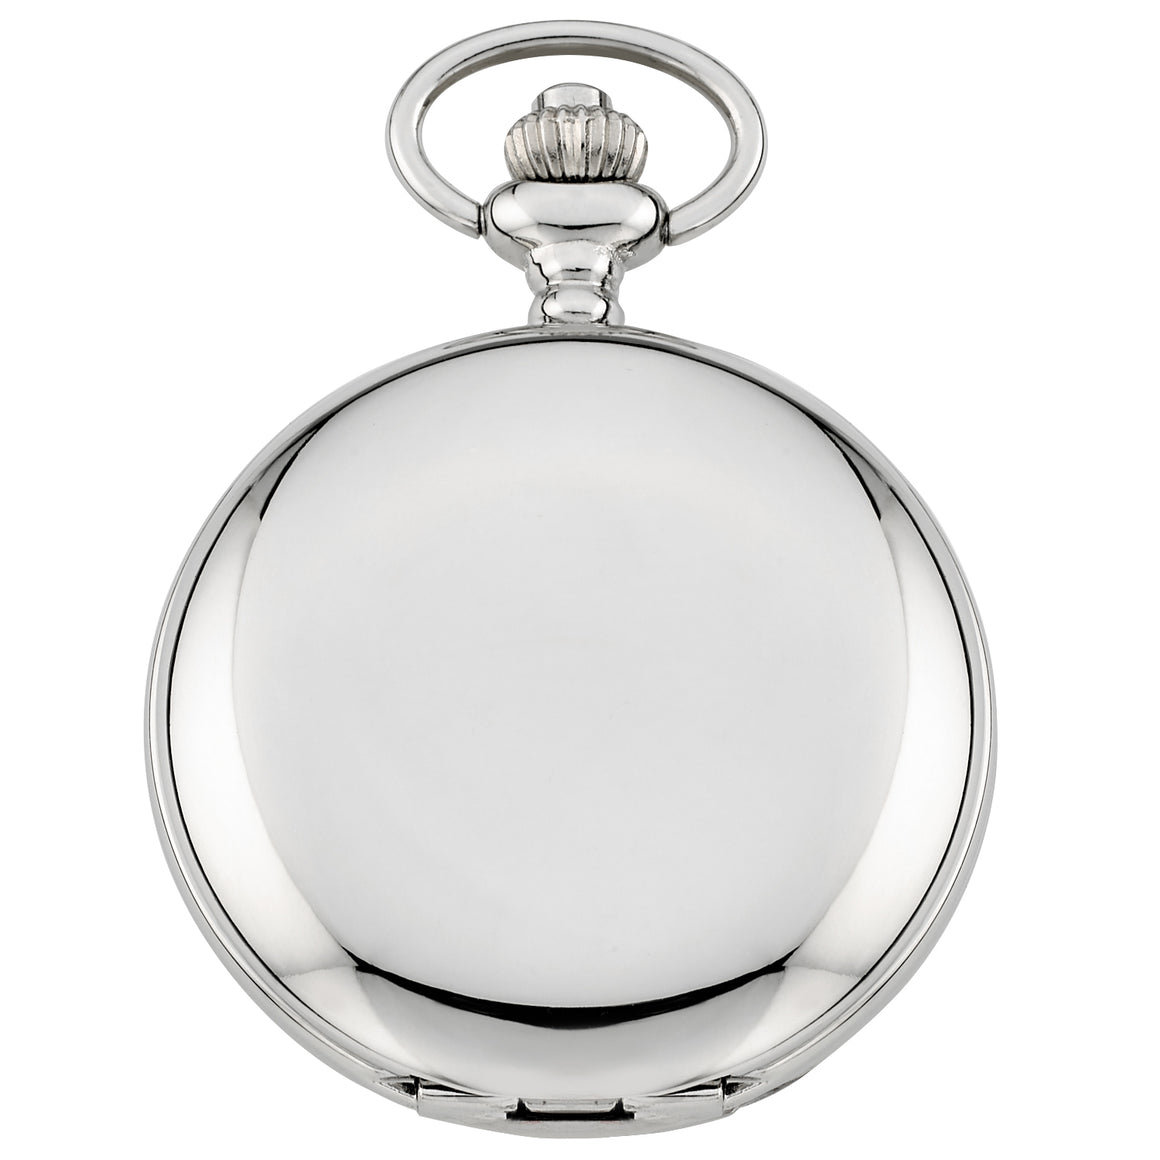 Gotham Men's Silver-Tone Railroad Polished Finish Covered Quartz Pocket Watch # GWC15044S - Gotham Watch